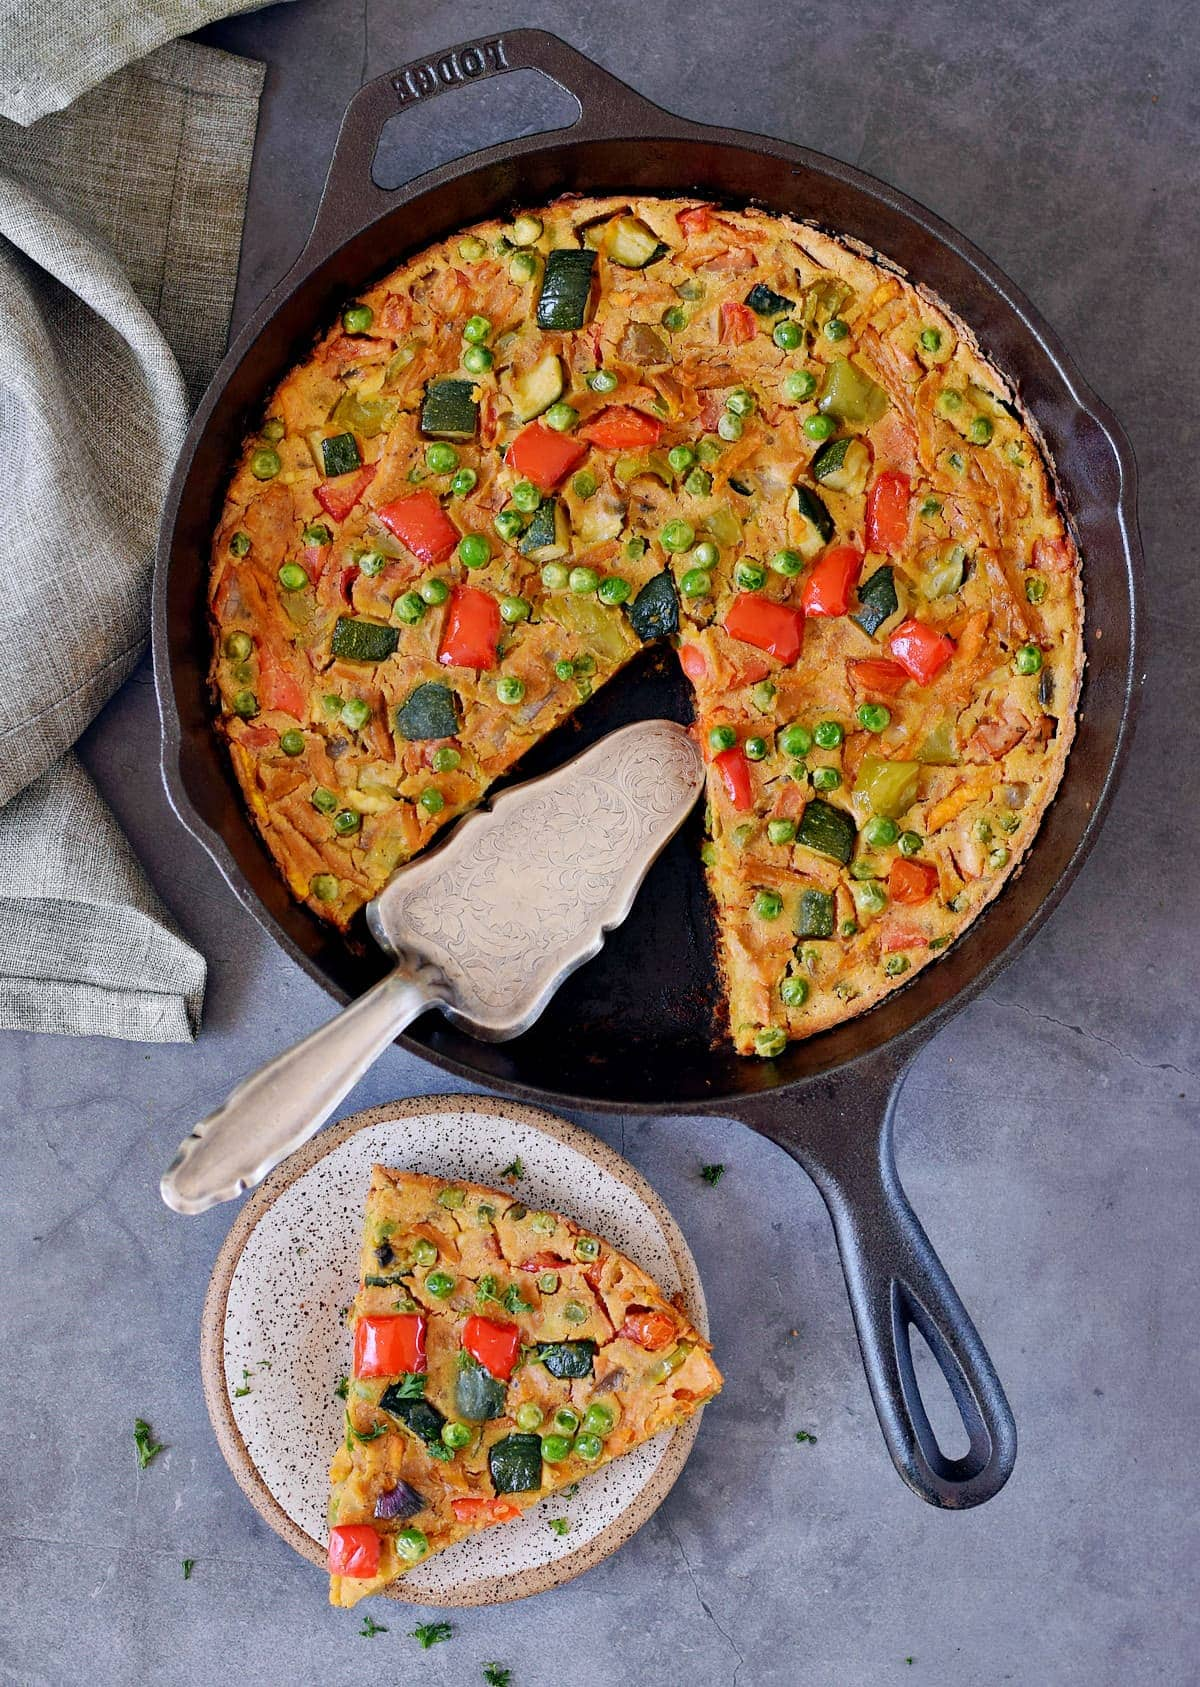 Bird view of vegan frittata in a black skillet with a piece on a small plate